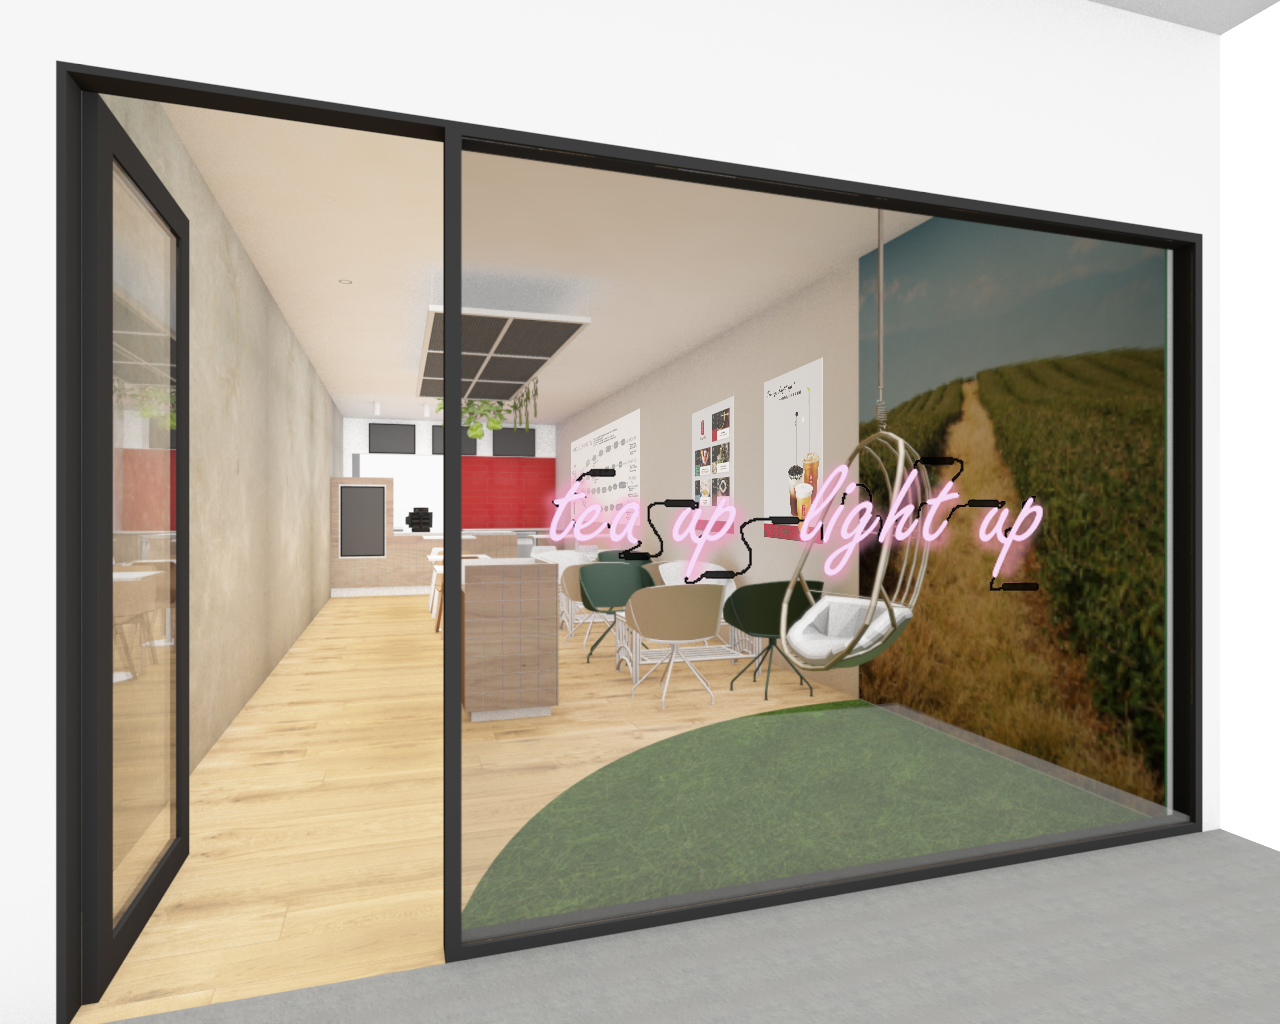 A 3D rendering of the new Gong Cha store in Takapuna